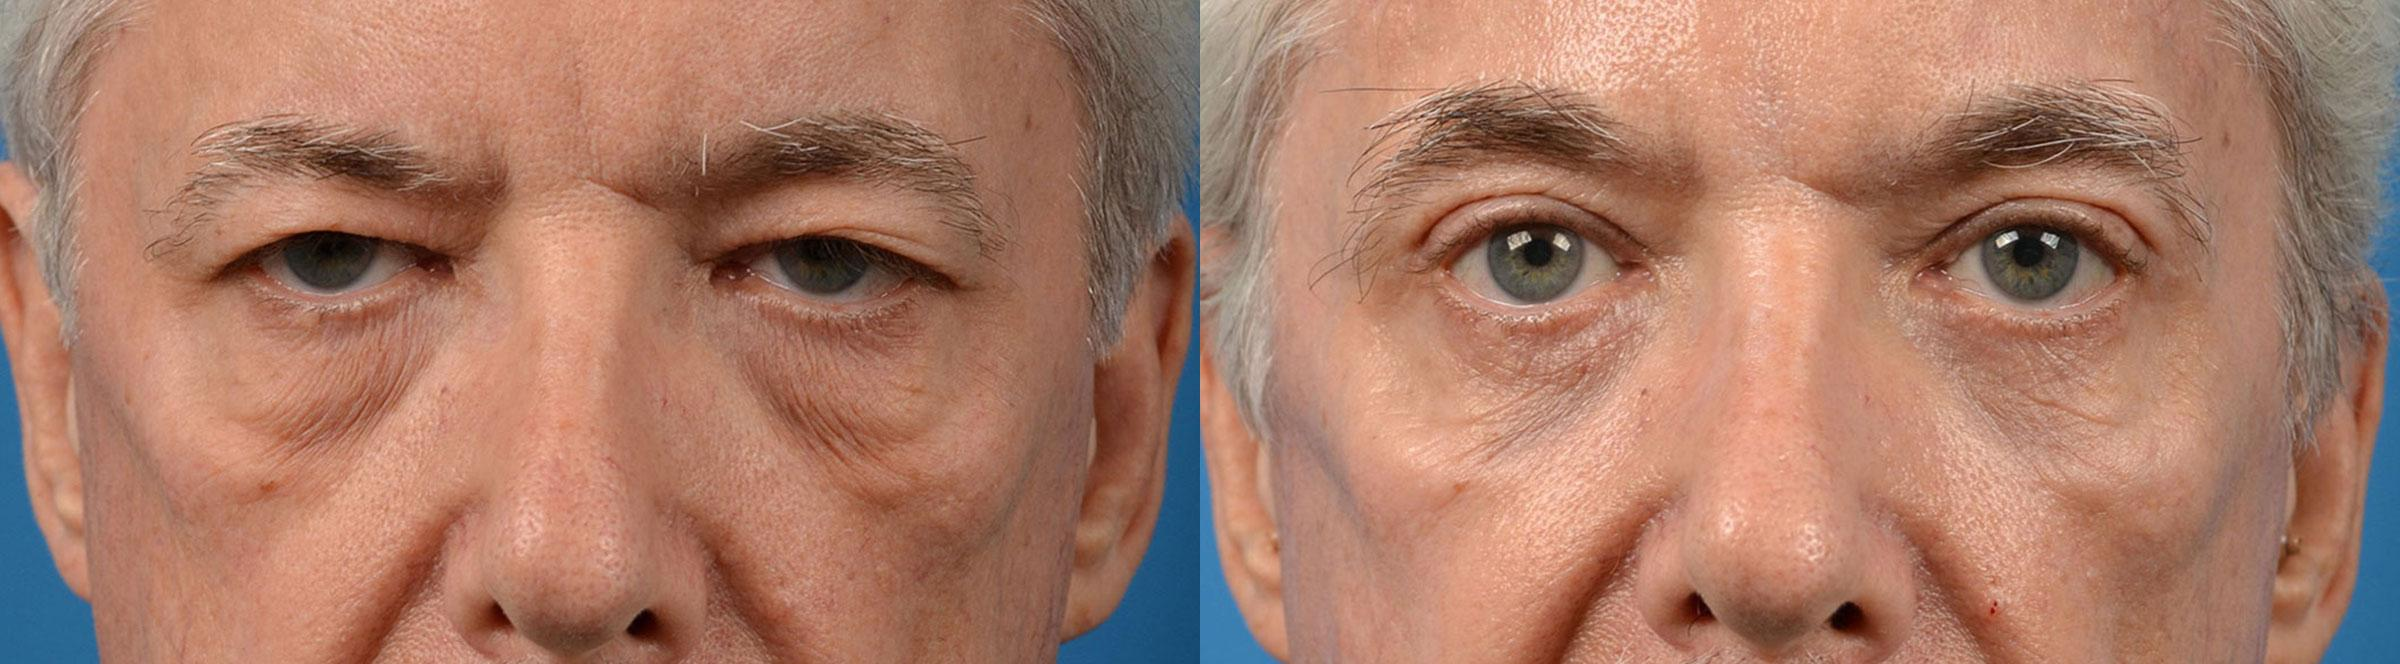 patient-58044-eyelid-surgery-before-after-10